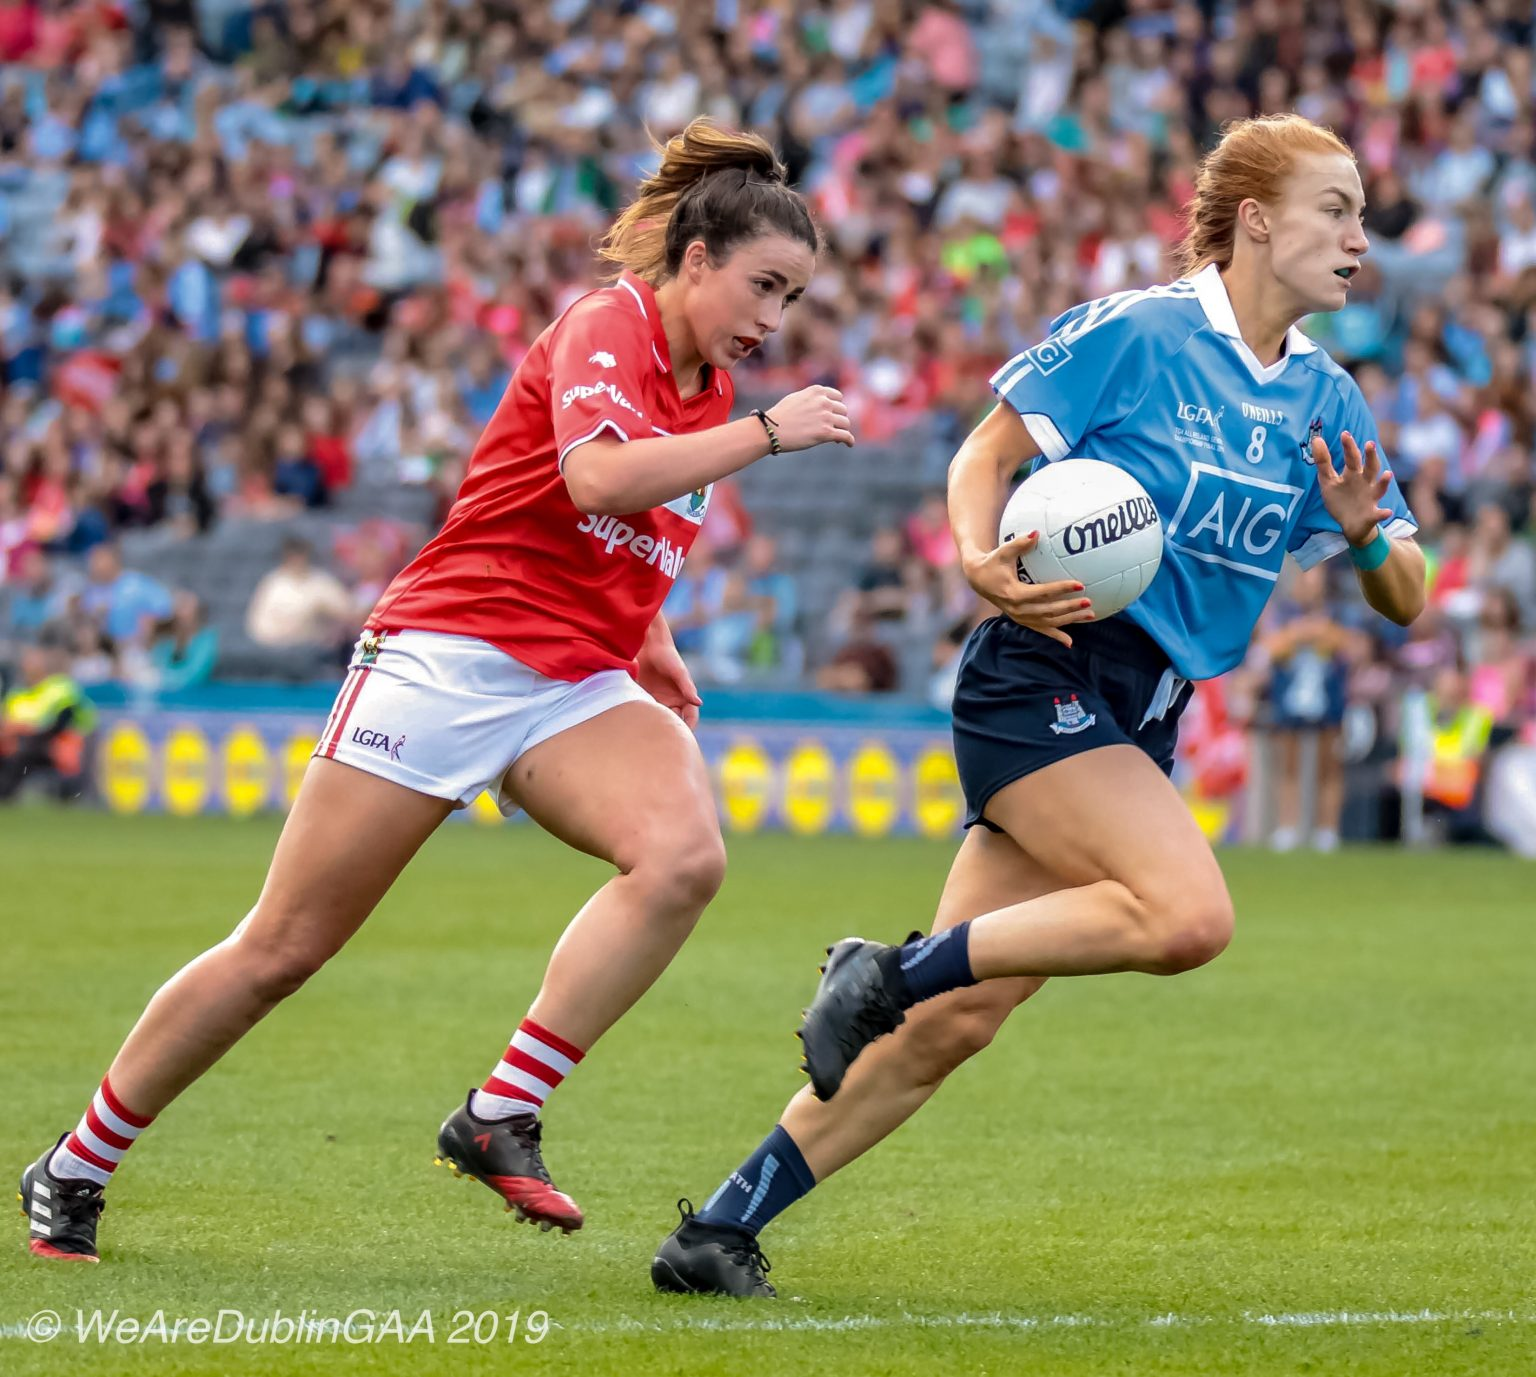 A Dublin Ladies Footballer in a sky blue jersey and navy shorts runs away with the ball from a Cork player in a red jersey and white shorts, the venue for the sides league semi final has been confirmed